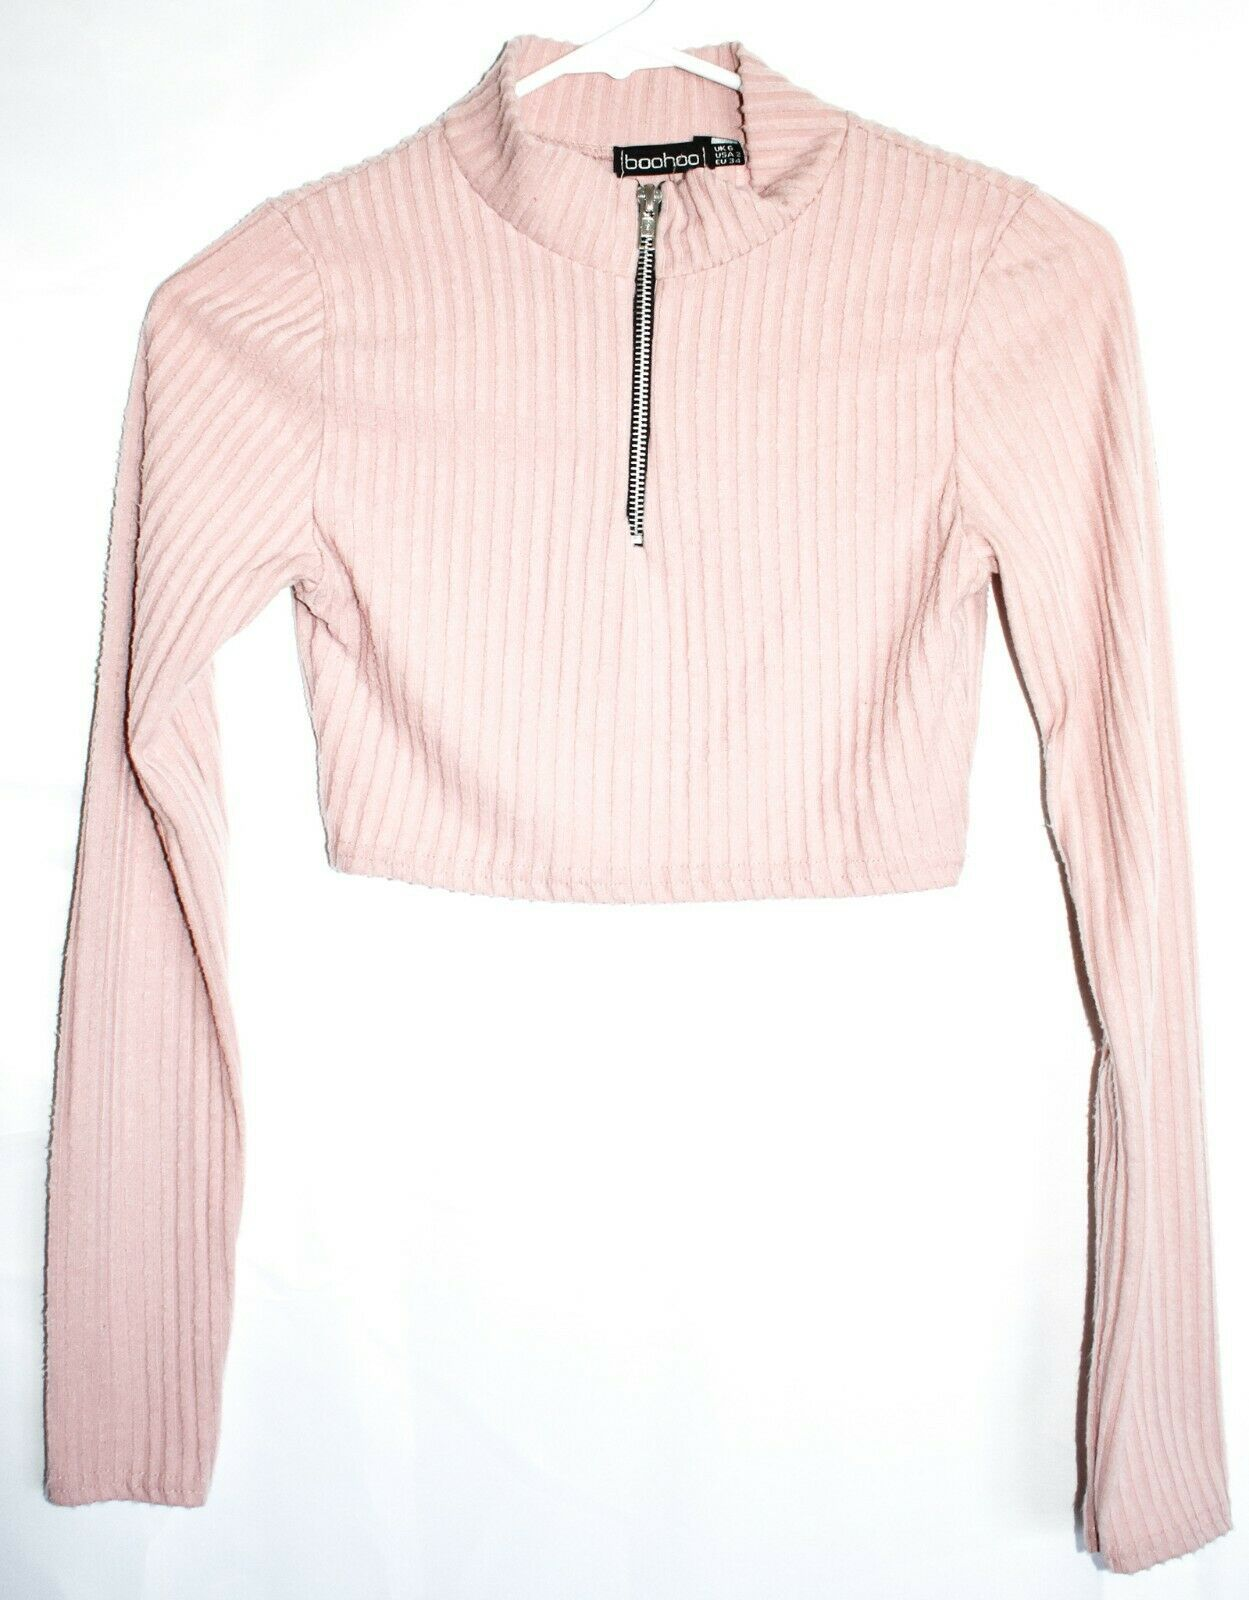 Boohoo Pink Dusty Rose Ribbed Knit Crop Pullover Sweater w Zipper US 2 UK 6